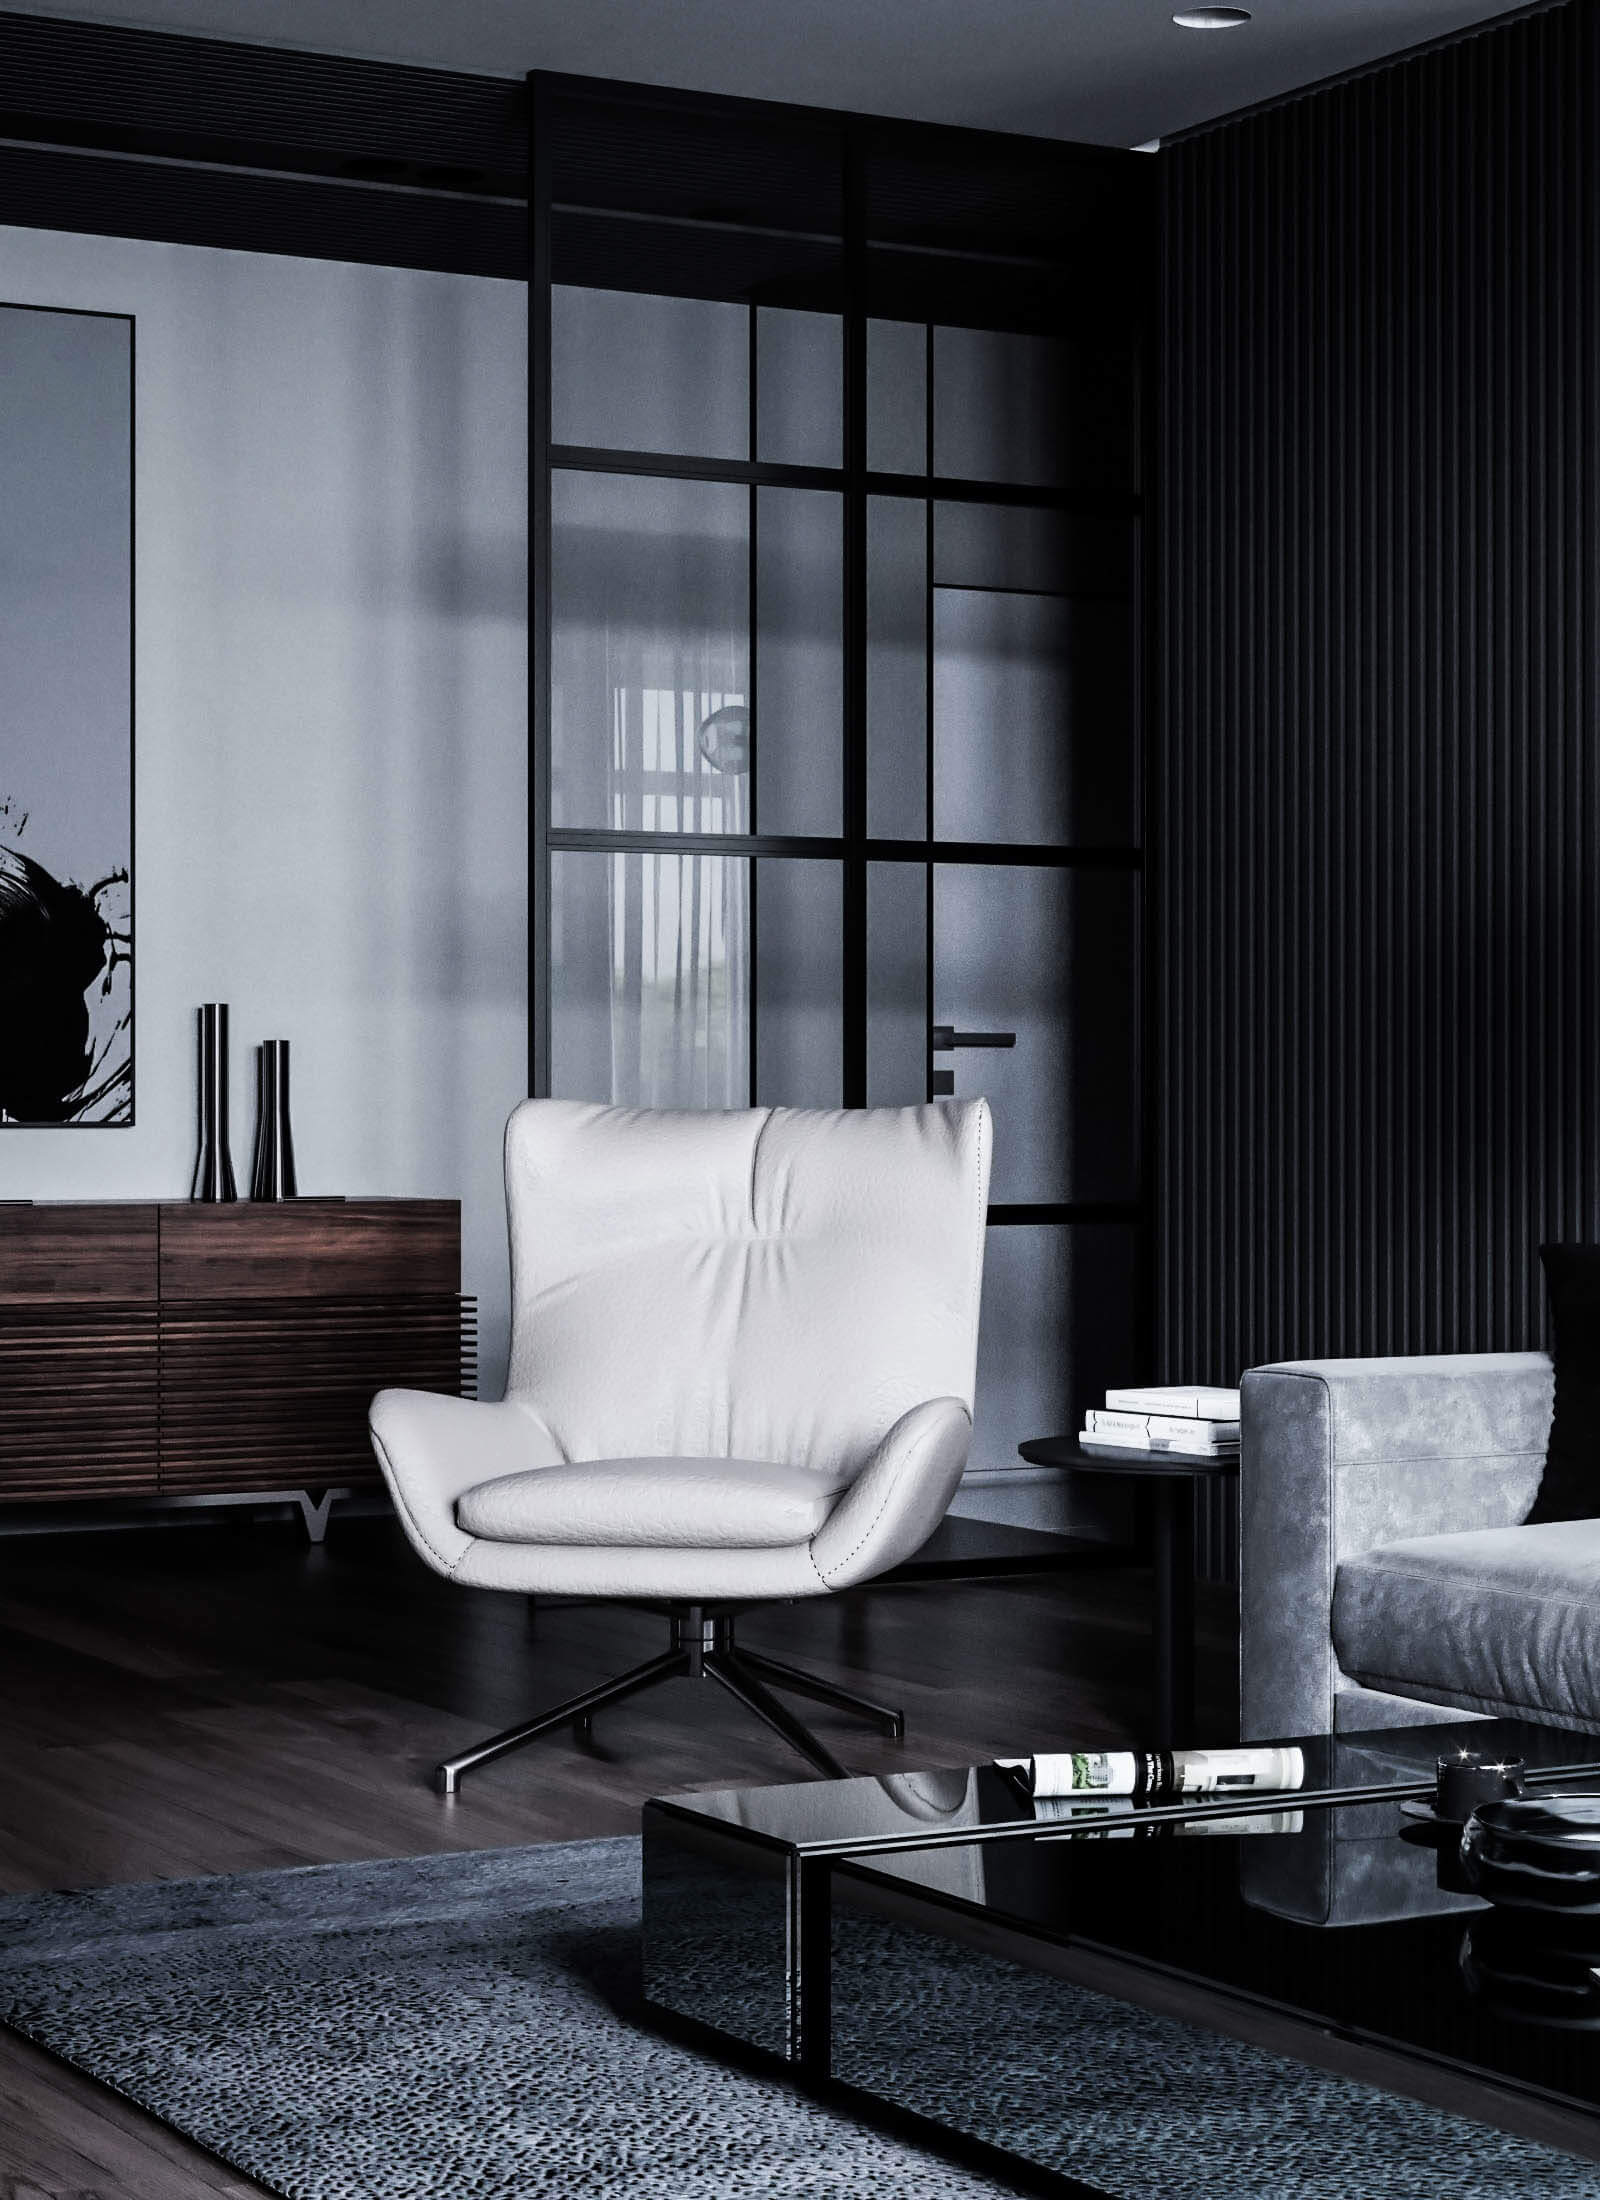 Dubrovka apartment living room seater leather - cgi visualization